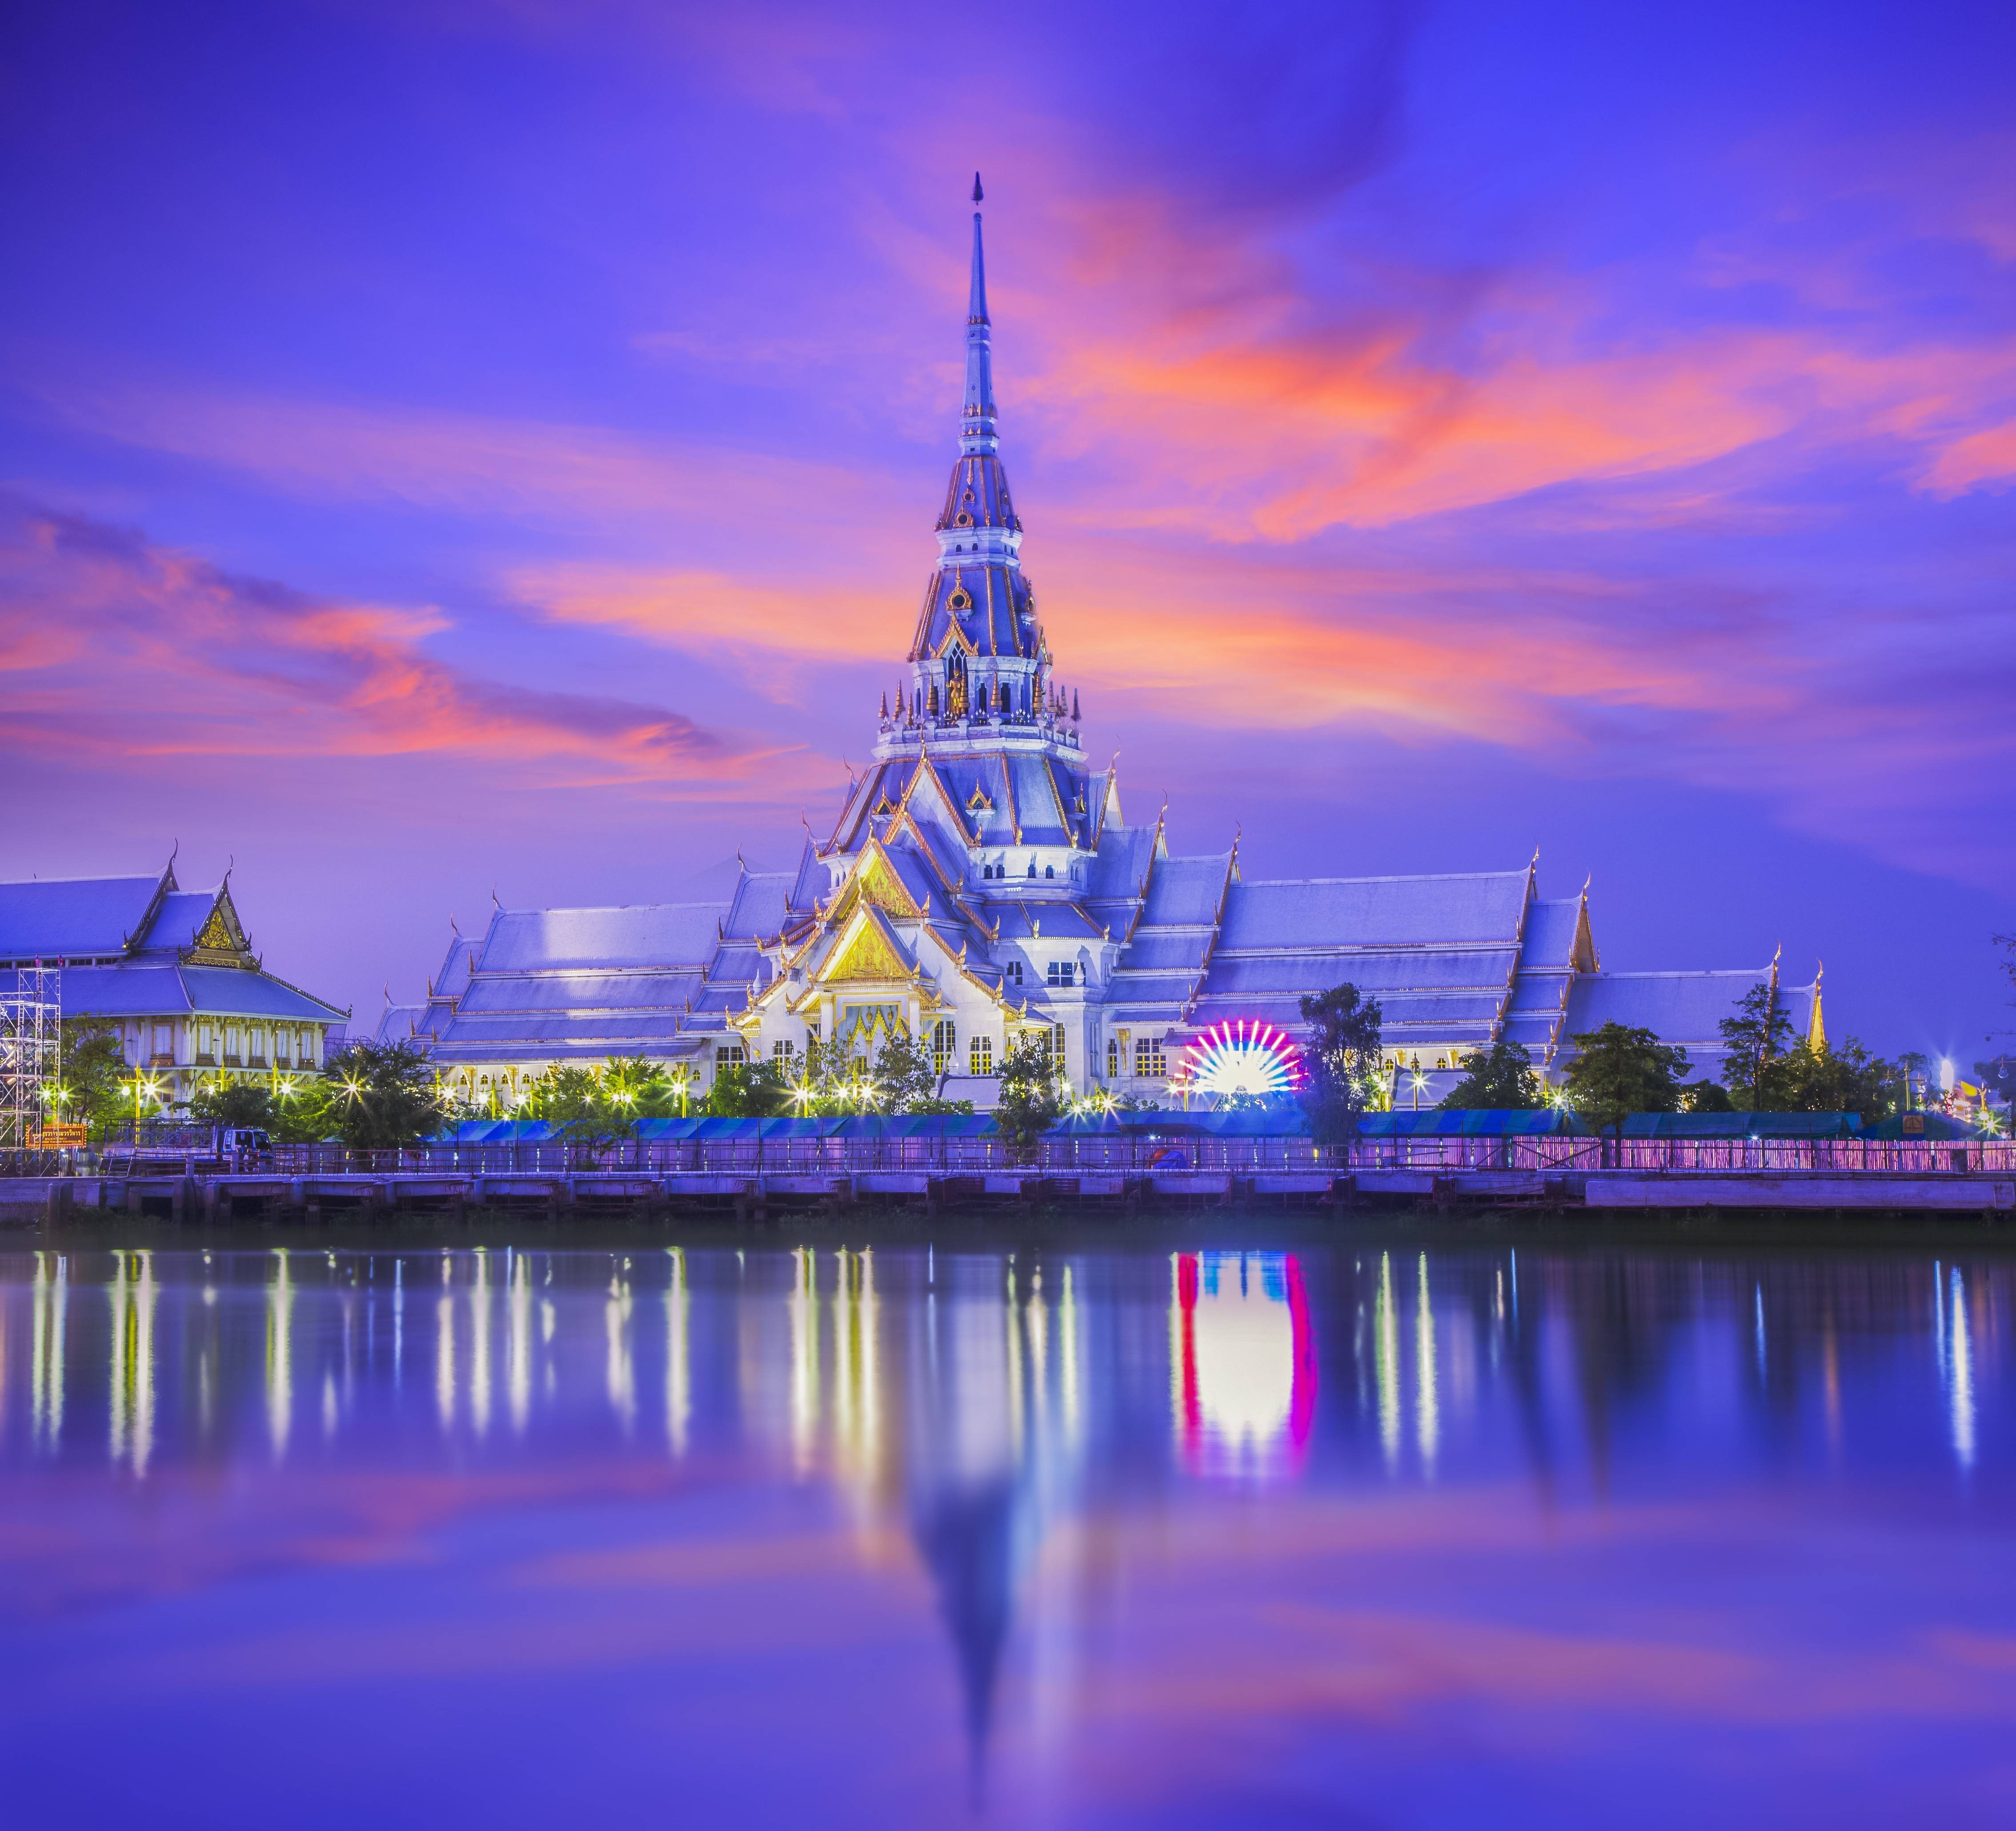 Thailand's temple HD wallpaper | HD Latest Wallpapers